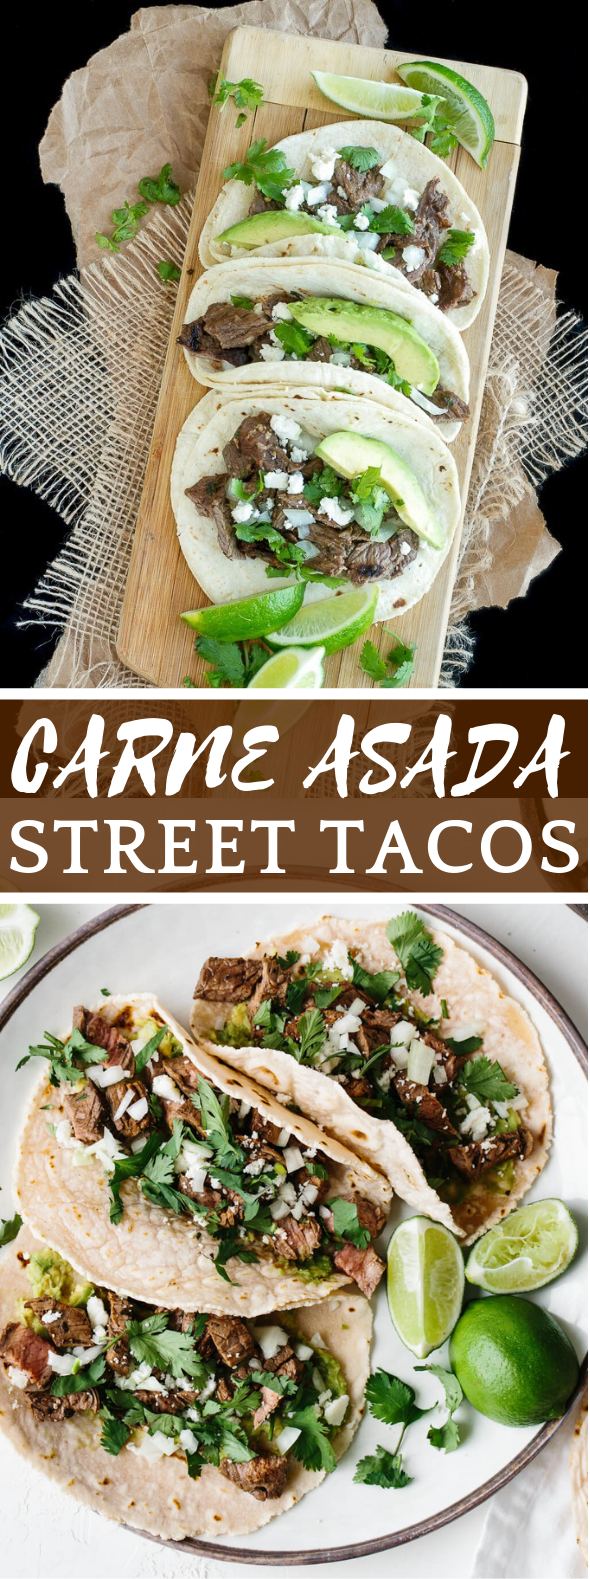 CARNE ASADA STREET TACOS #dinner #simplysteak